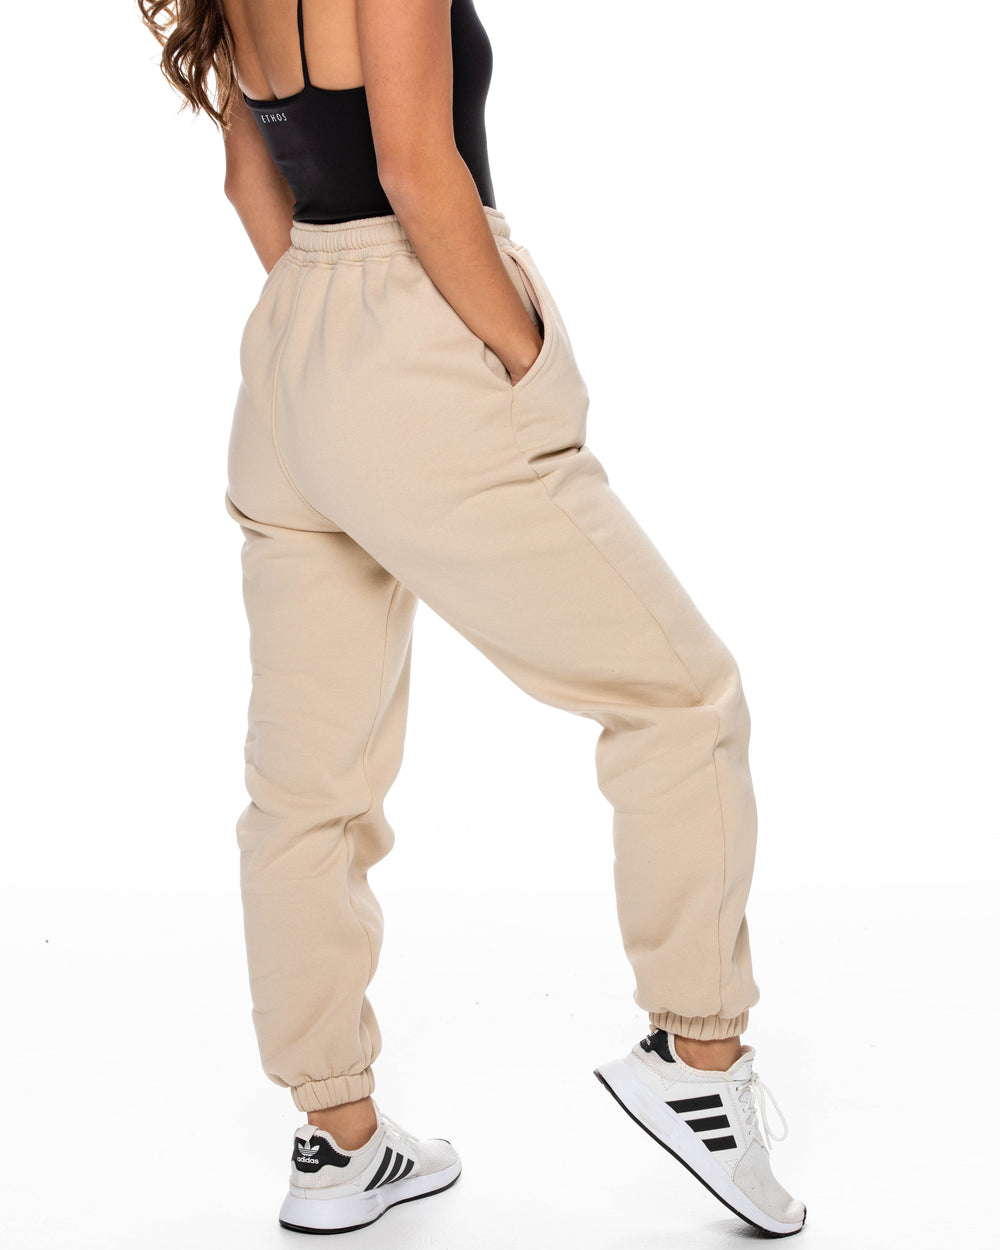 Oversized Sweats - Sand